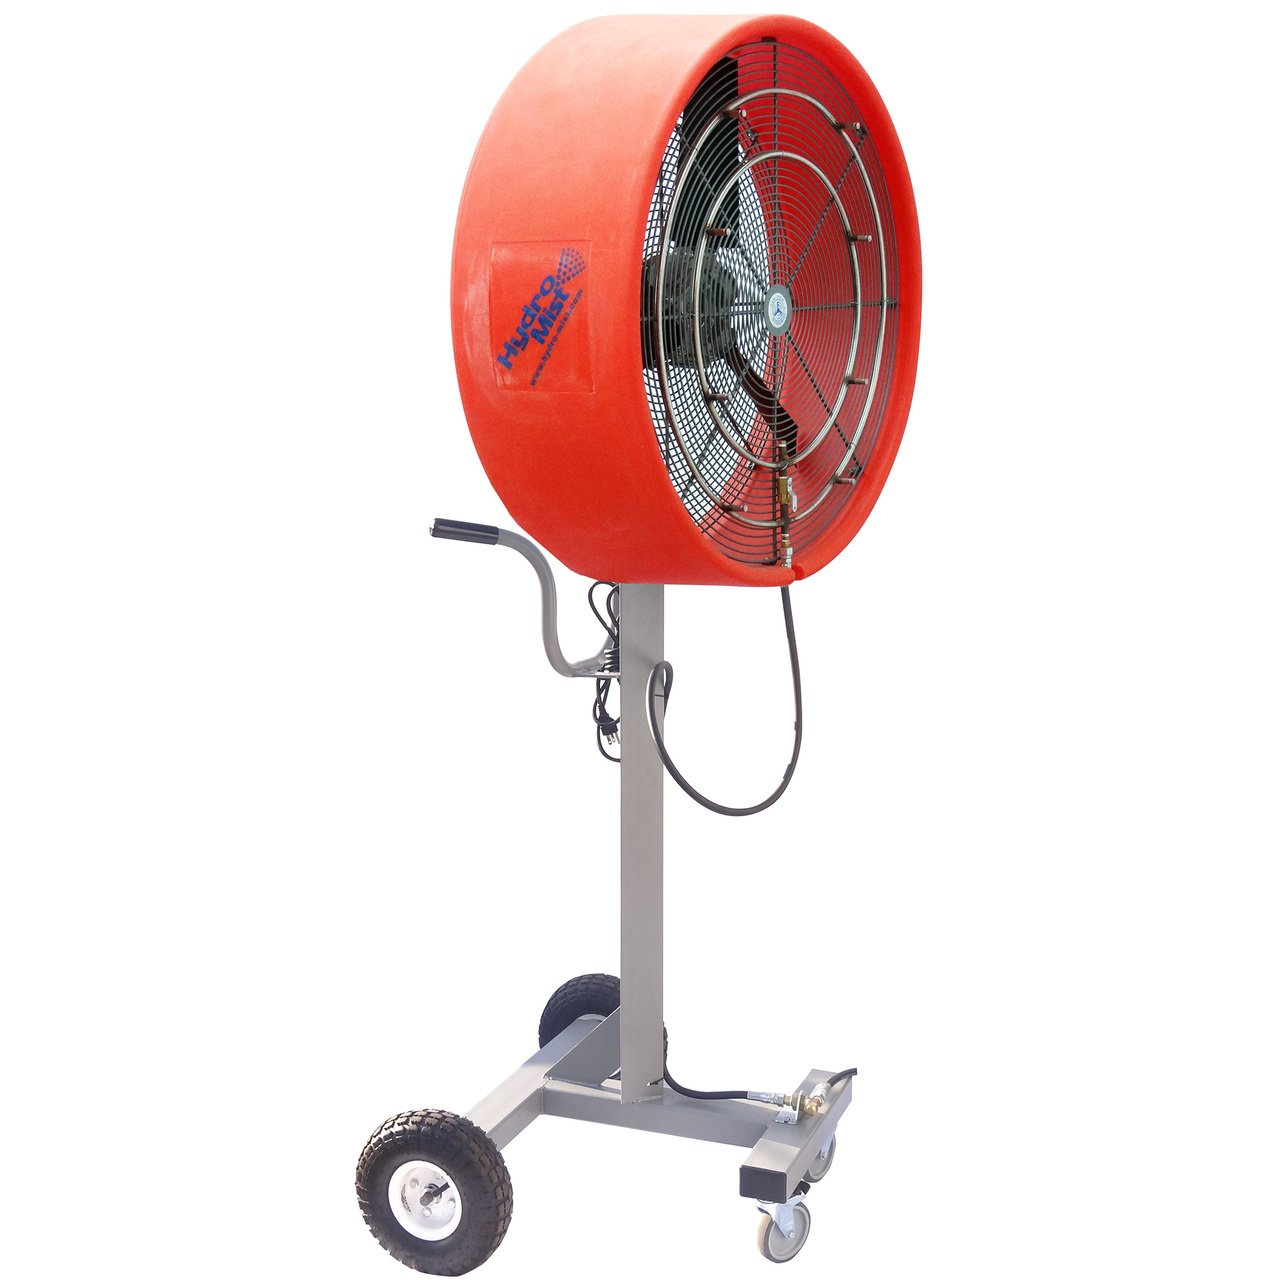 HydroMist HMI-3000-8S 30'' Extreme Portable Satellite Unit, Orange, 8 Nozzles, 110V, 15 Amp